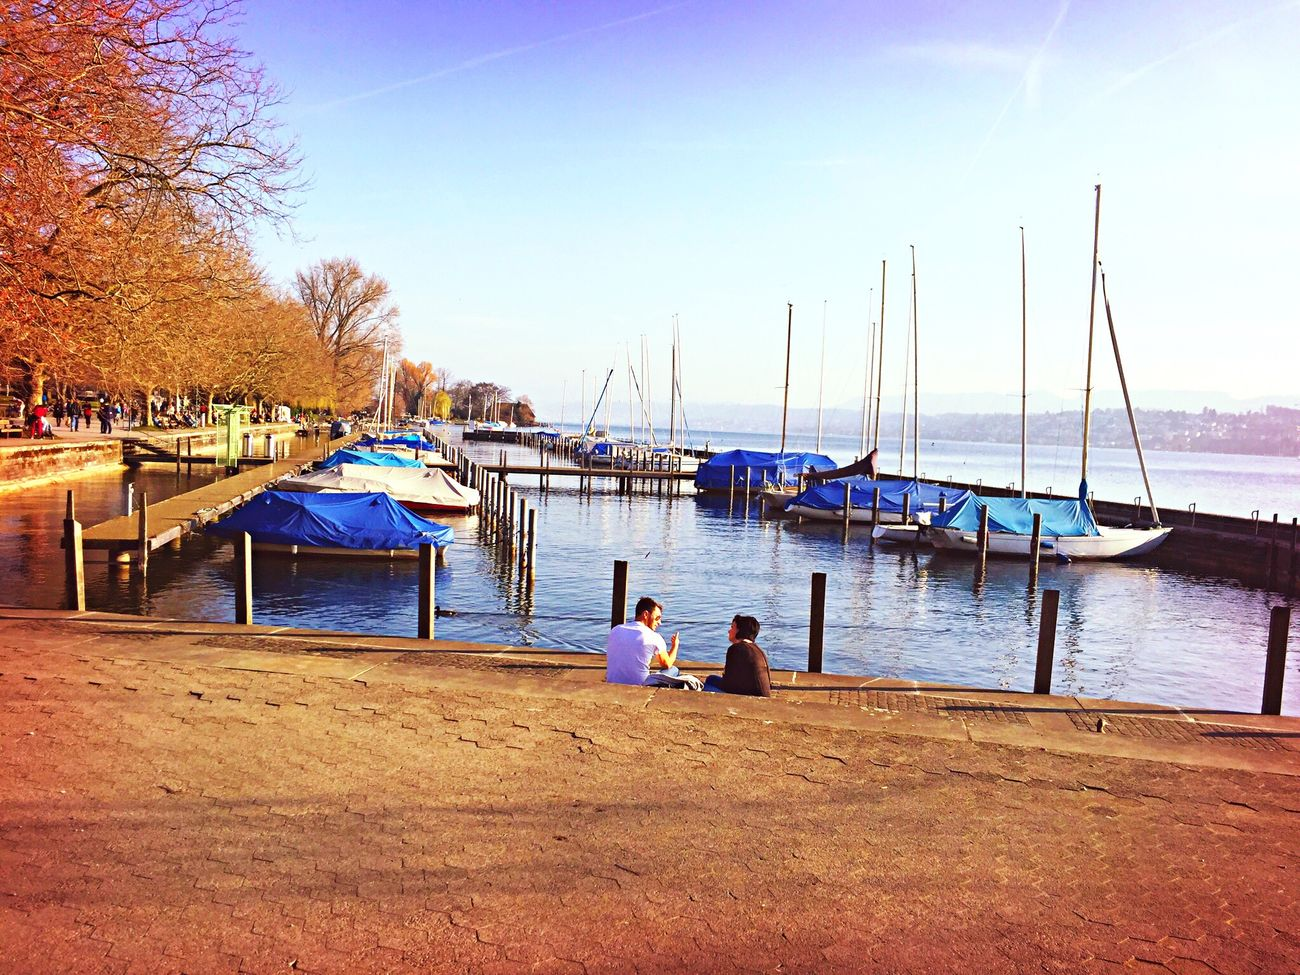 Water Real People Sky Outdoors Two People Beauty In Nature Nature Tree Lake Züri Blue Zürich Zurich, Switzerland Zurichlake Lakezurich Pier Sailing Boat